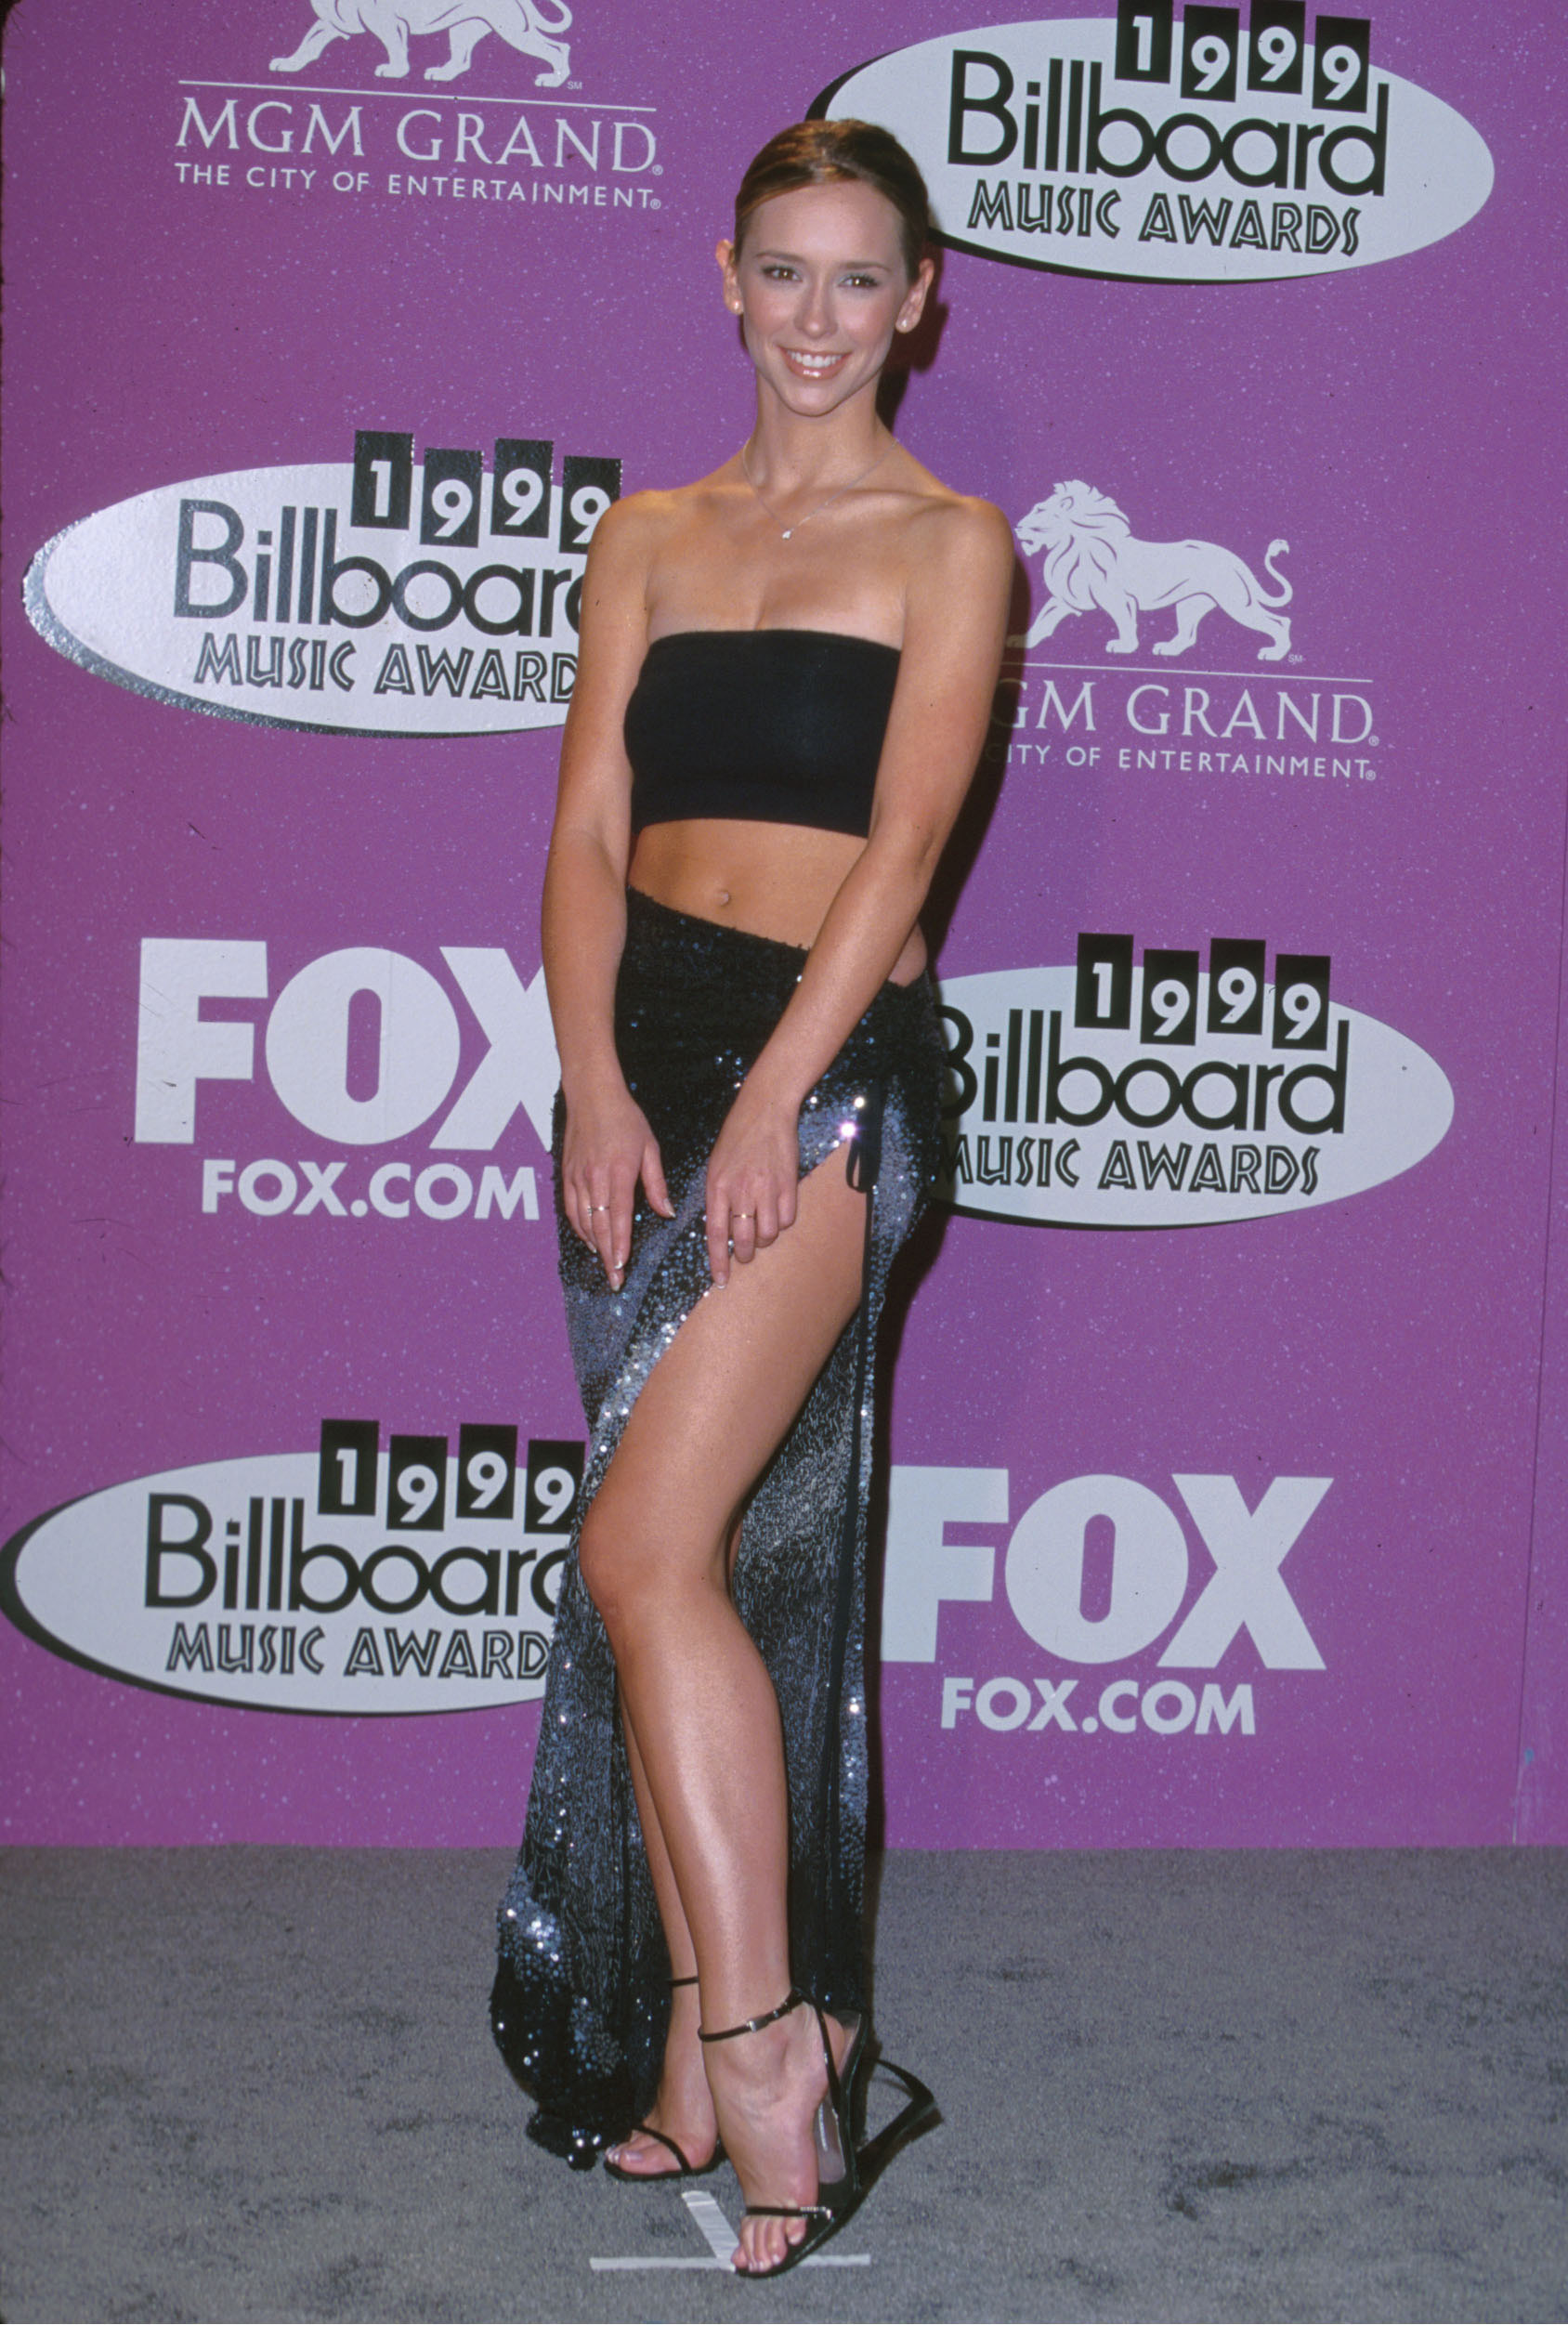 Jennifer Love Hewitt is pictured at the 10th Annual Billboard Music Awards at MGM Grand Hotel in Las Vegas, Nevada on Dec. 8, 1999.